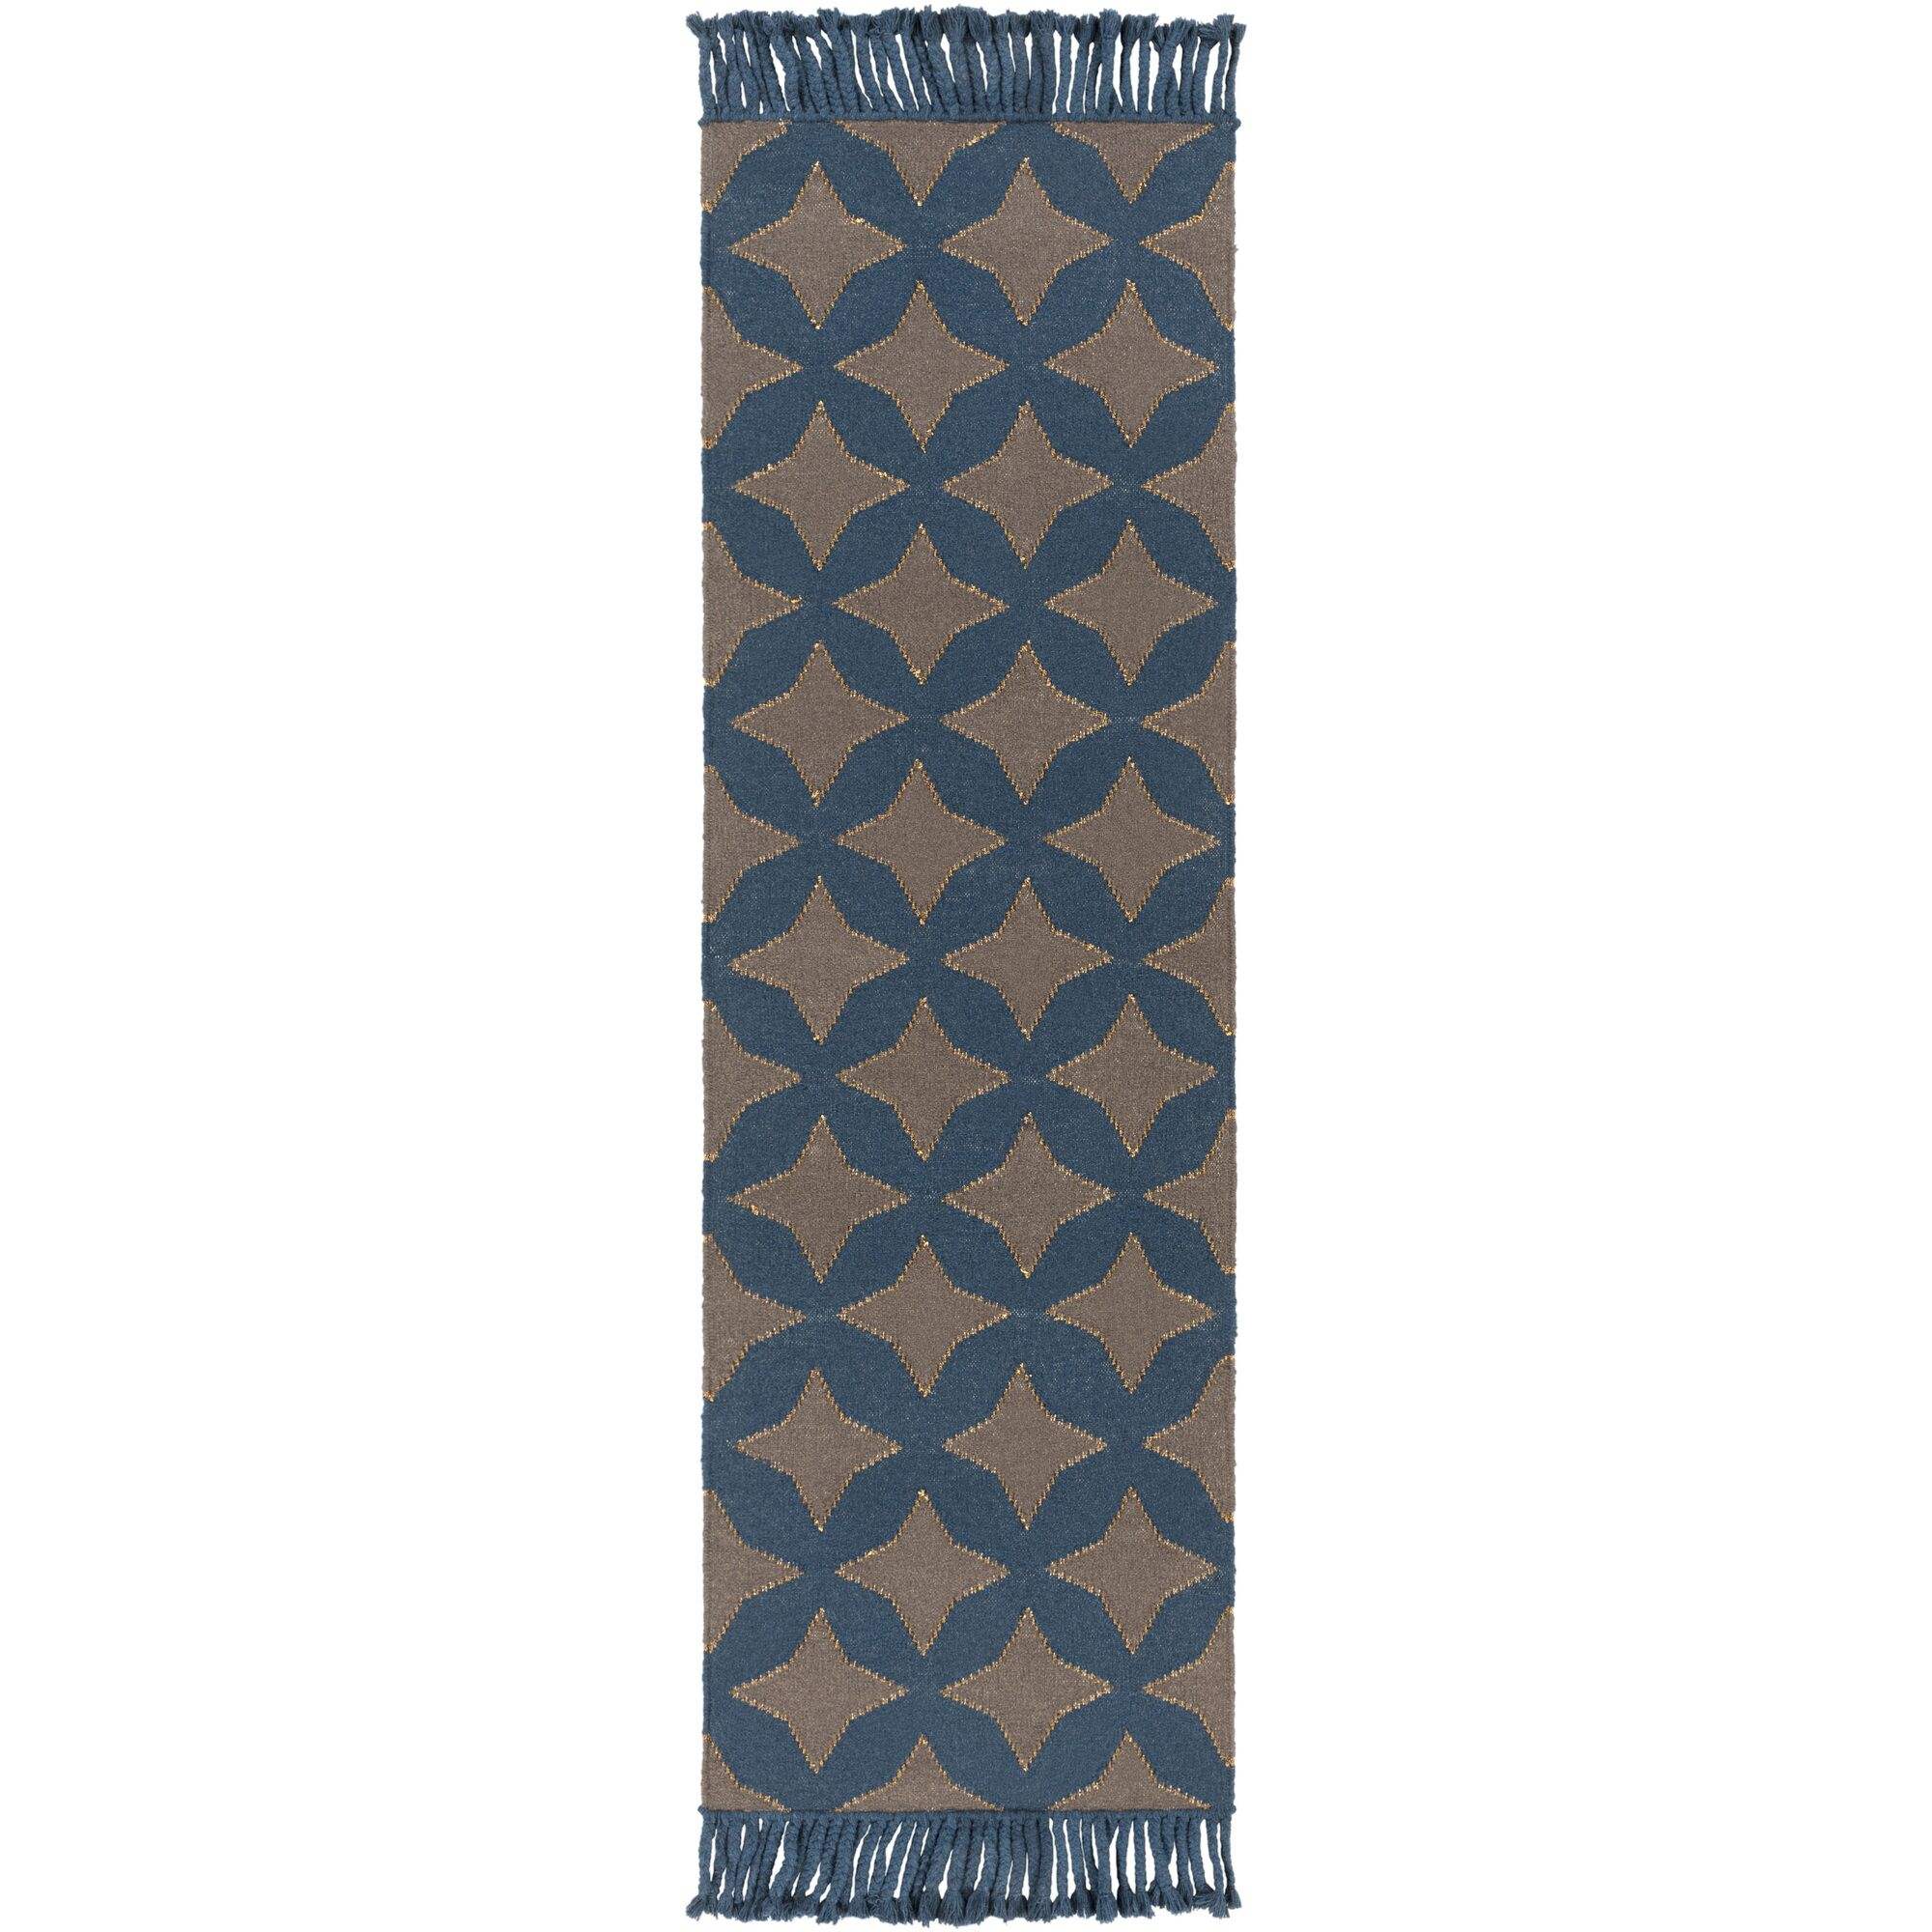 Roselawn Charcoal Area Rug Rug Size: Runner 2'6